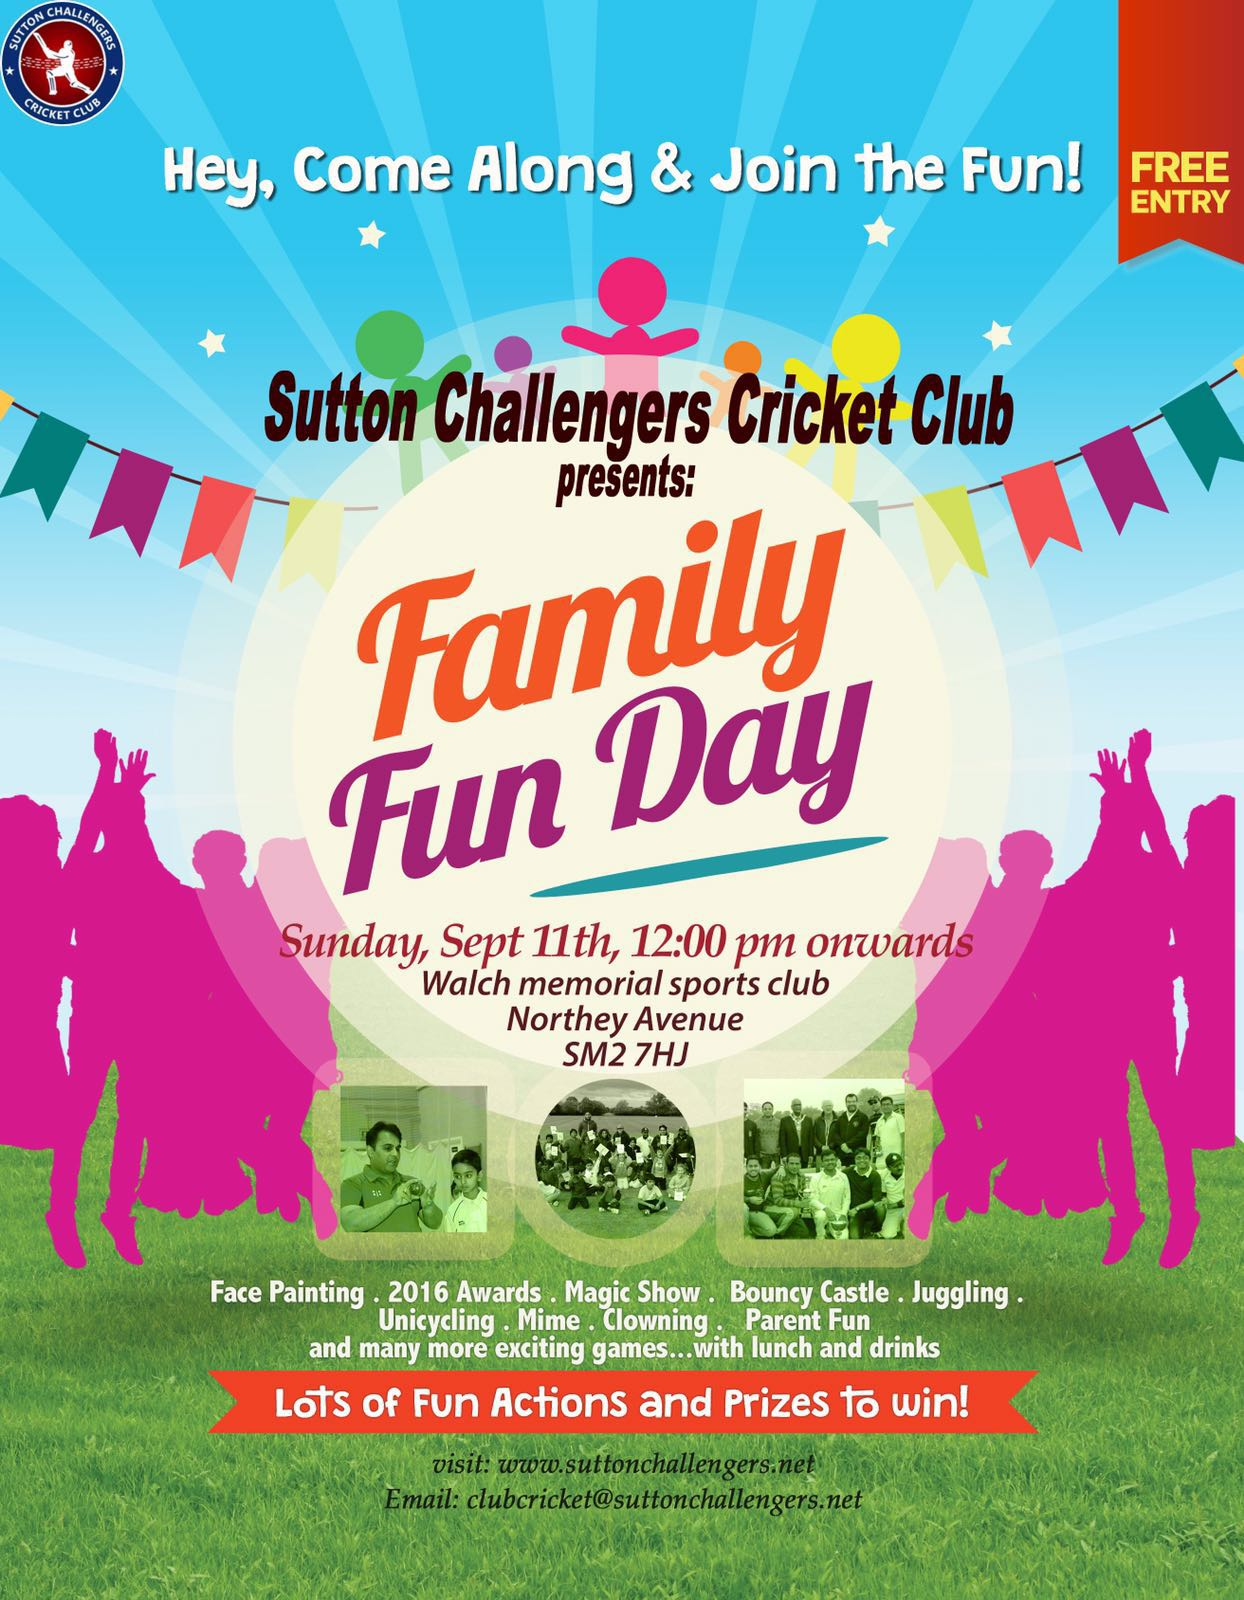 SCCC Family day – Sutton Challengers Cricket Club